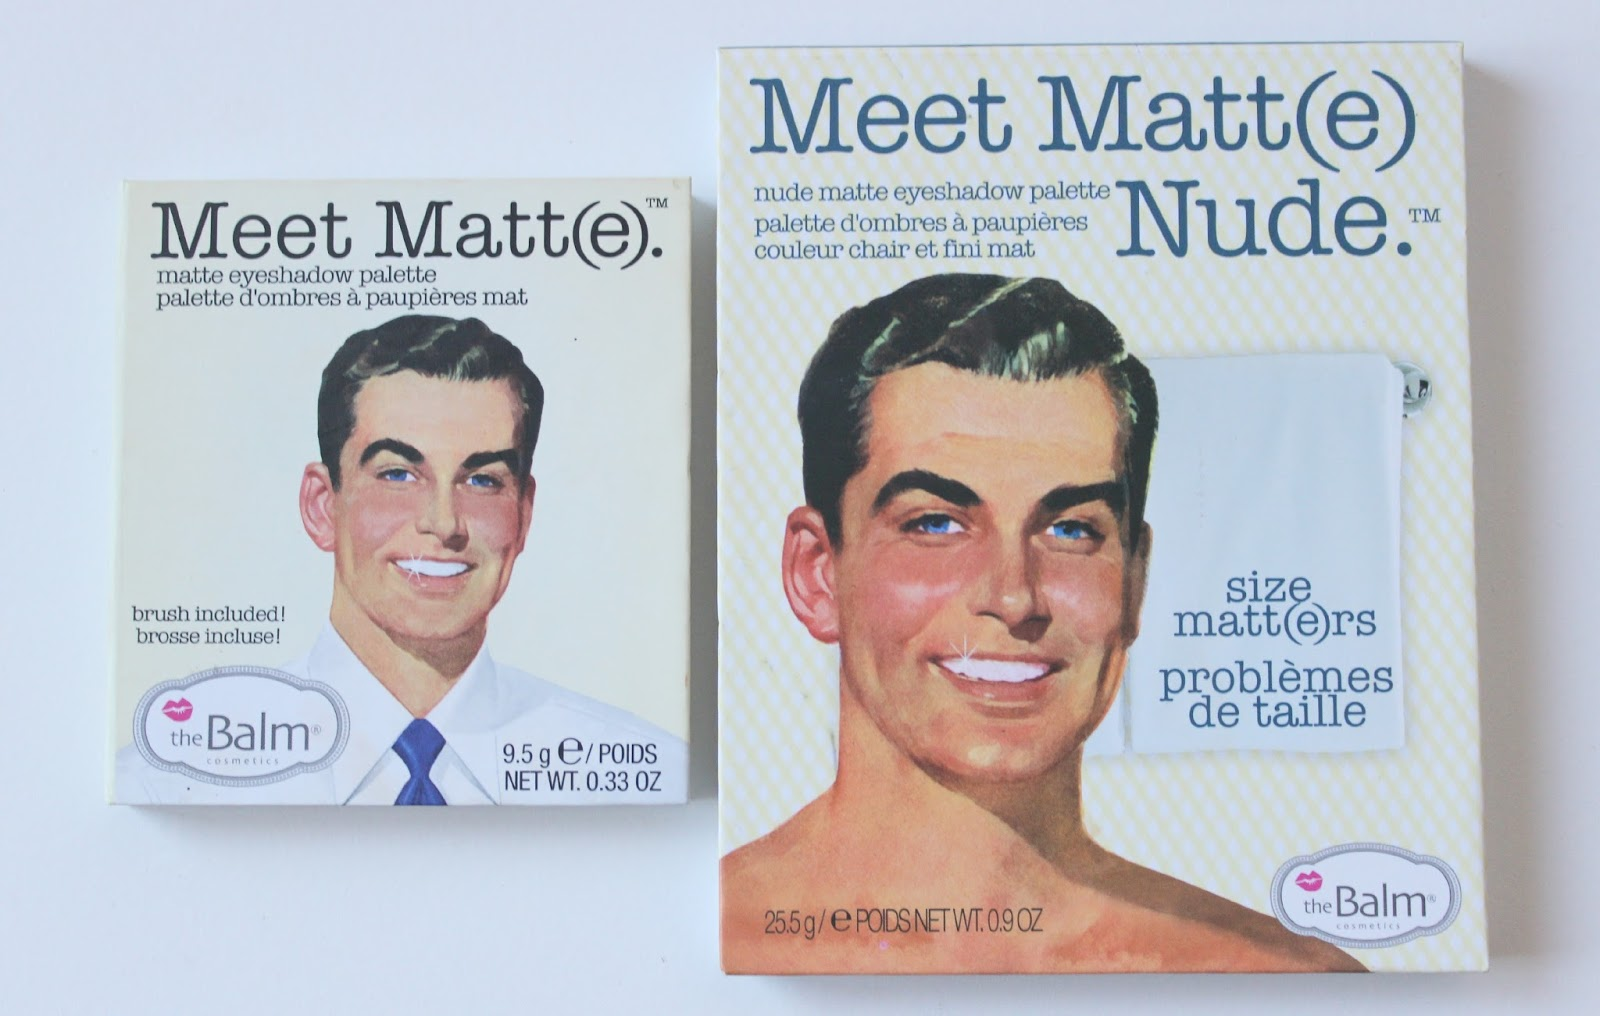 A picture of theBalm theBalm Meet Matt(e) and Meet Matt(e) Nude